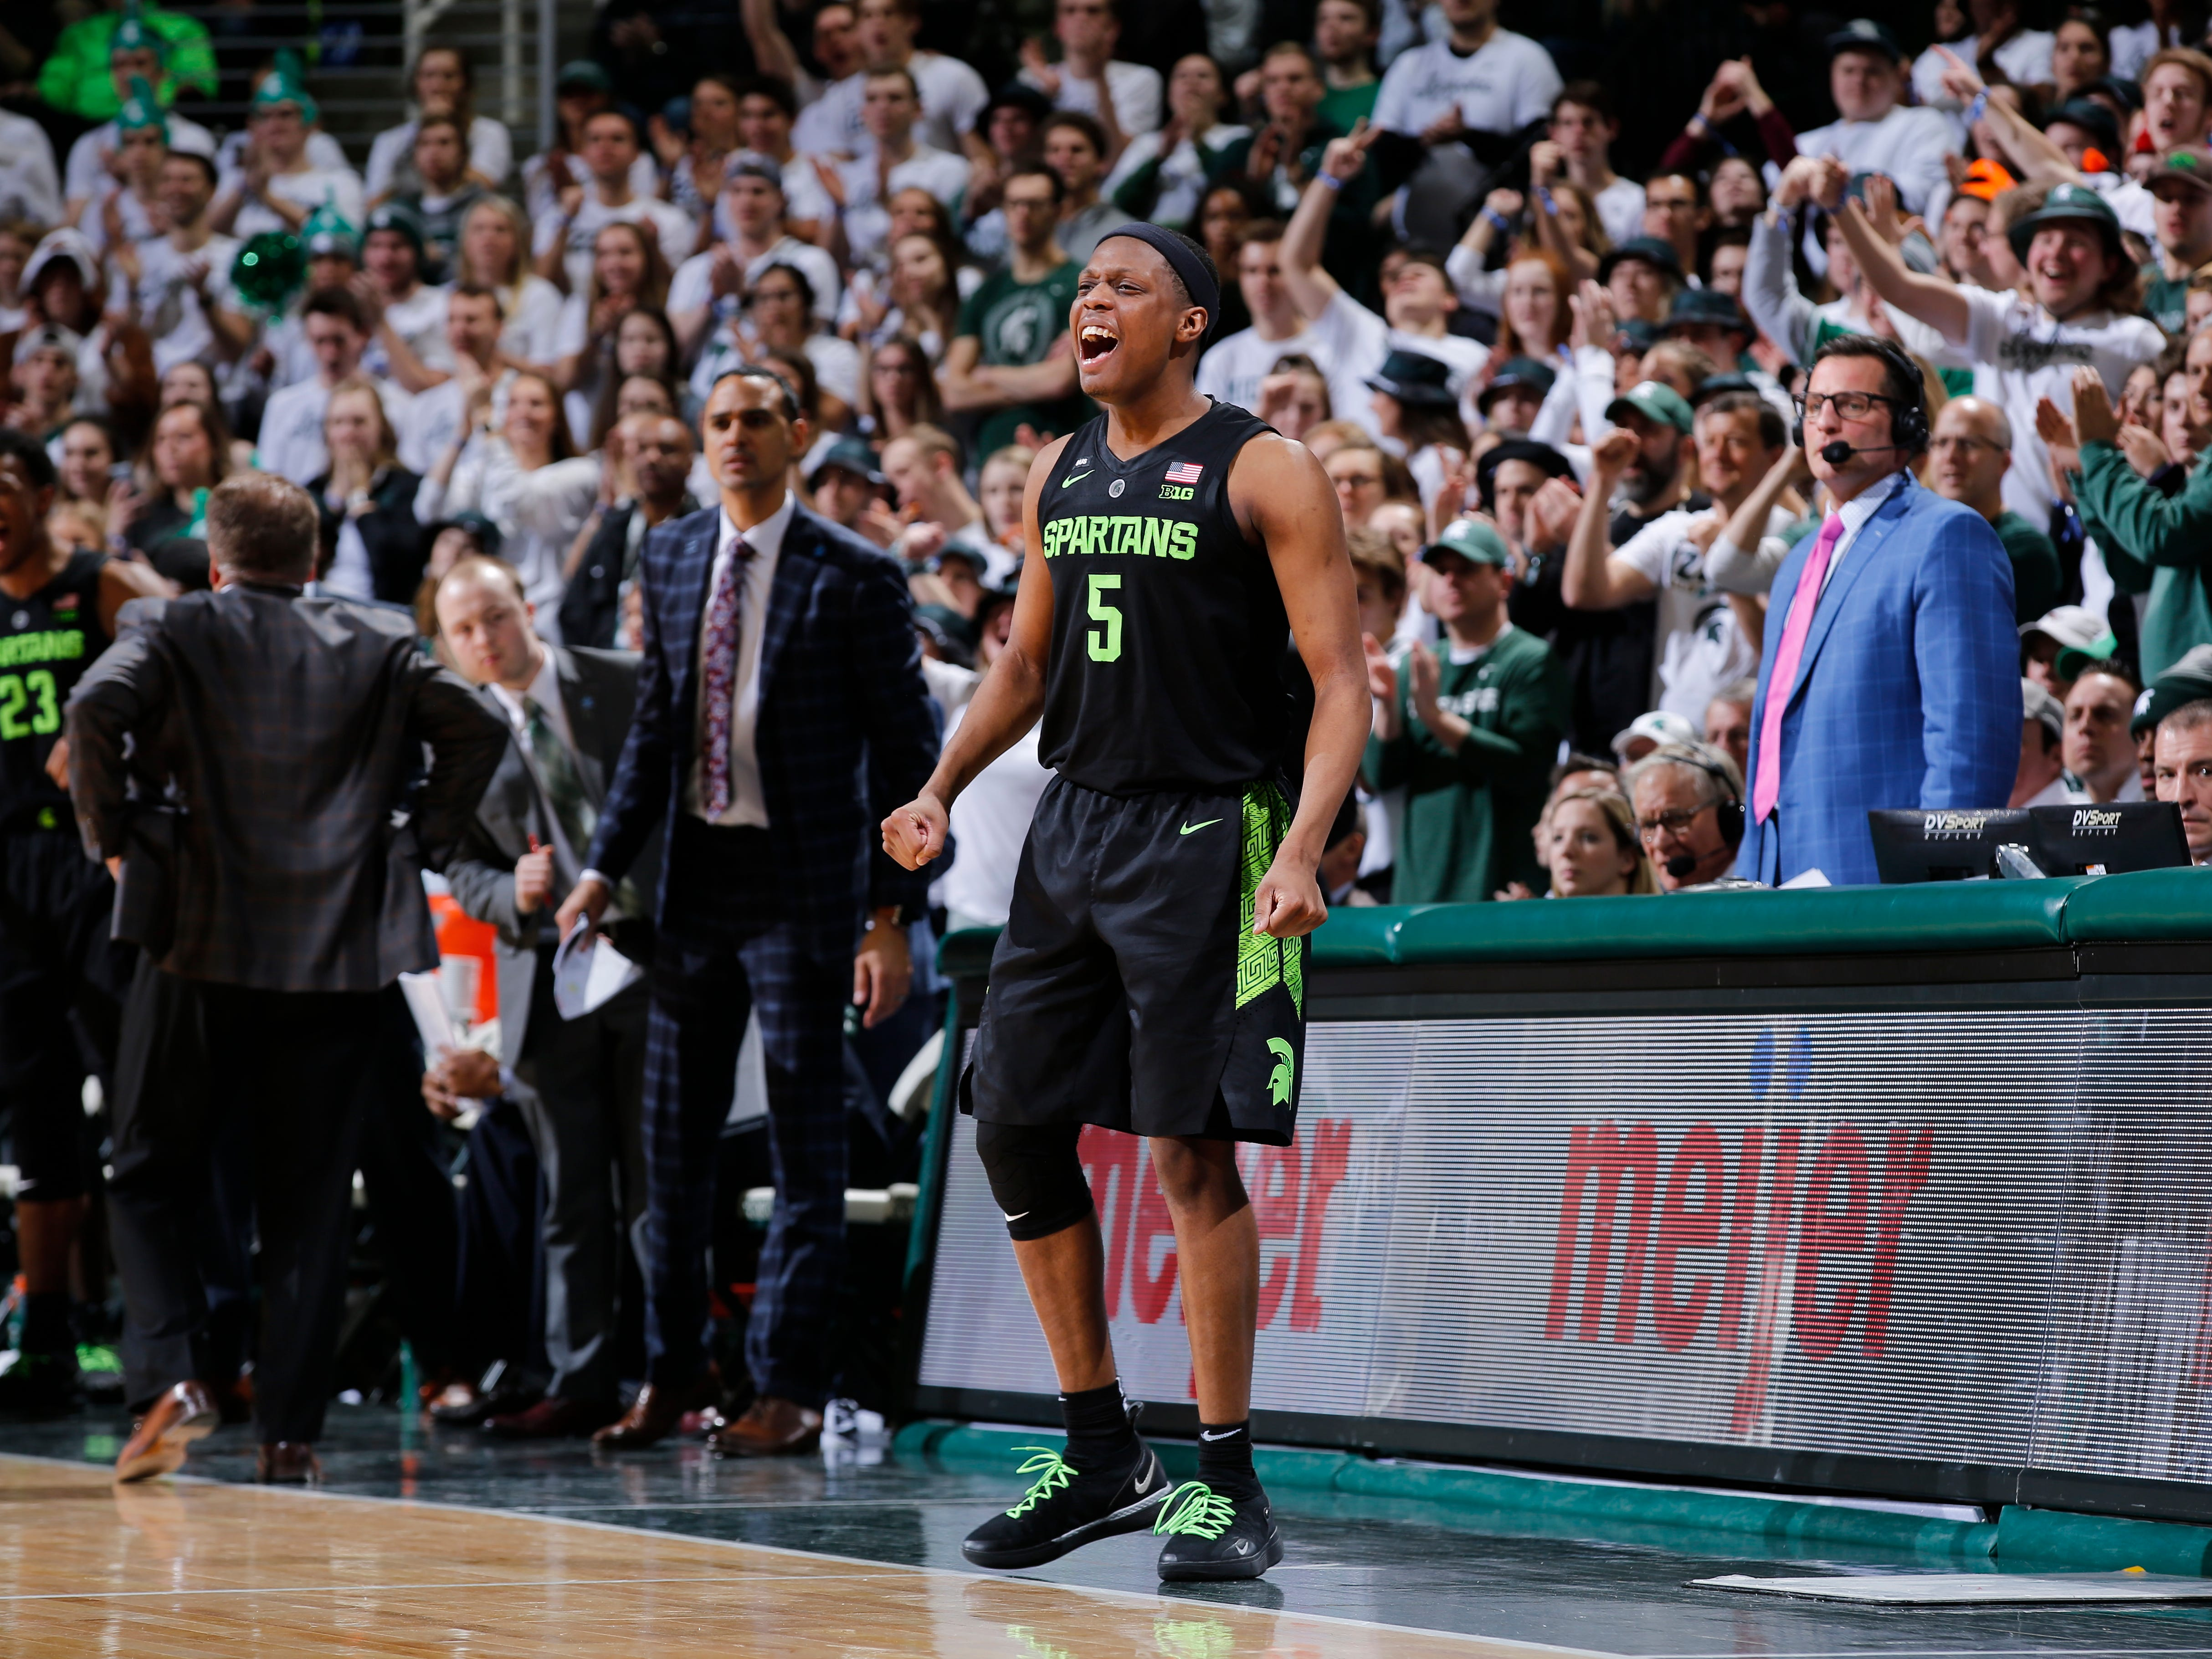 Michigan State's Cassius Winston celebrates from the sidelines during the second half of MSU's 62-44 win Sunday, Feb. 17, 2019, in East Lansing.